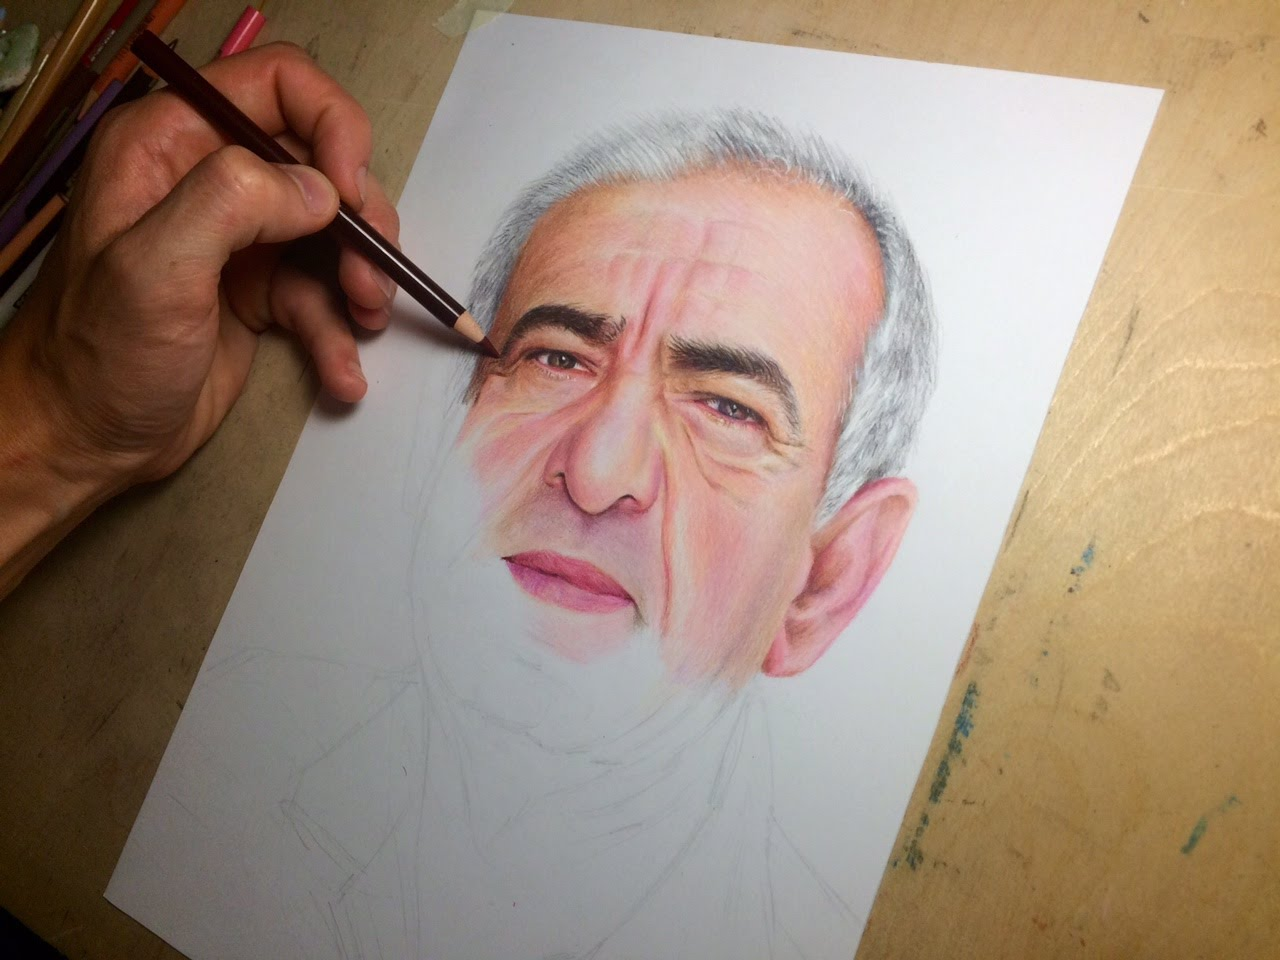 1280x960 Colored Pencil Drawing Of A Man. (Time Lapse Drawing Video)